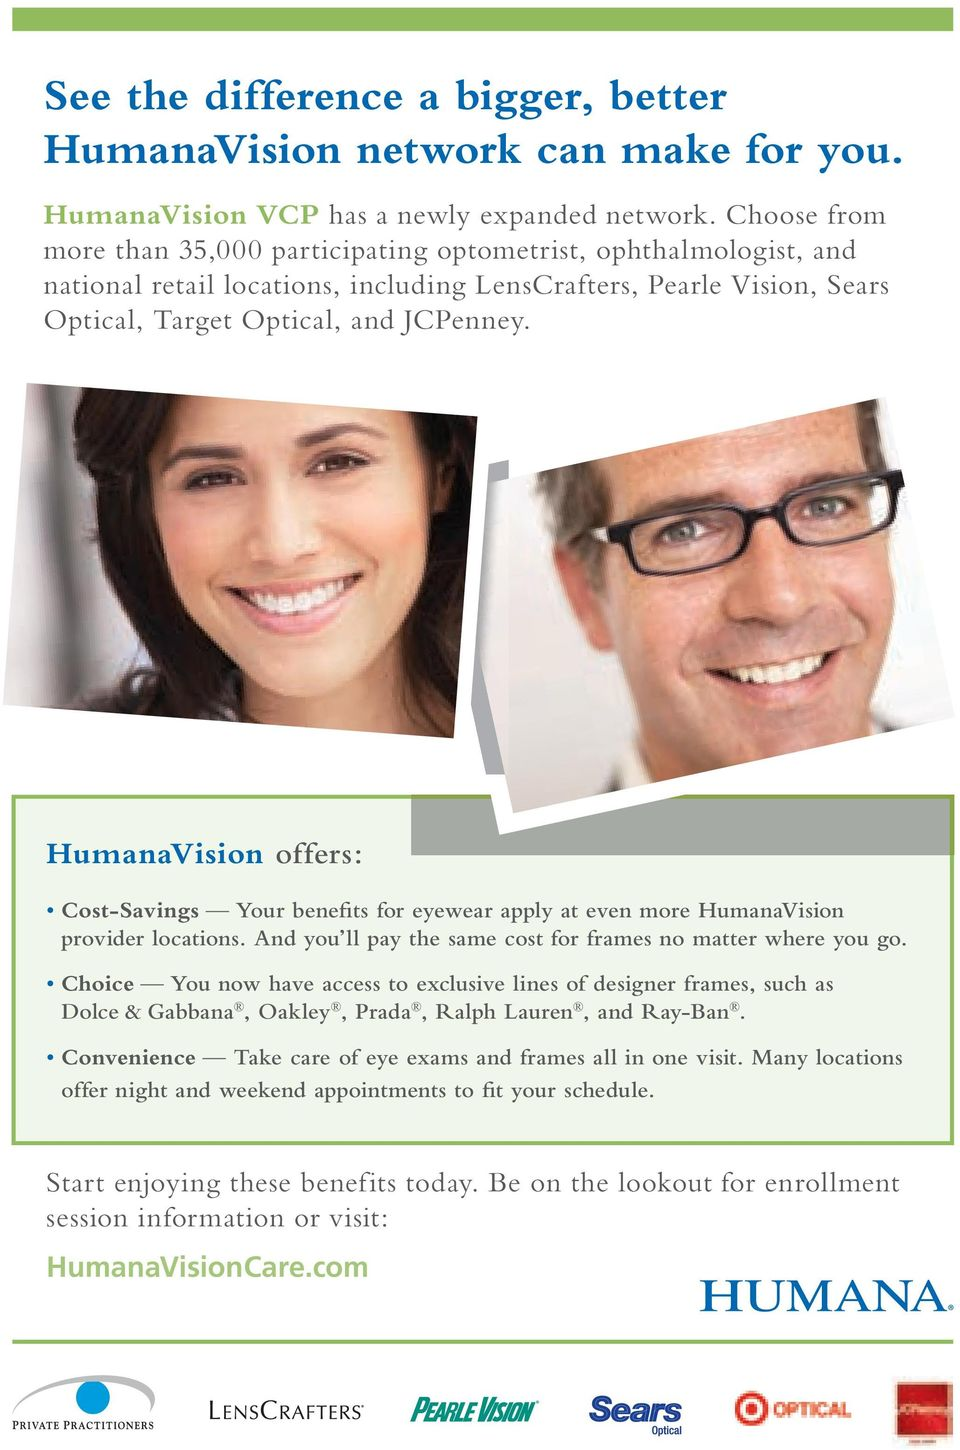 HumanaVision offers: Cost-Savings Your benefits for eyewear apply at even more HumanaVision provider locations. And you ll pay the same cost for frames no matter where you go.